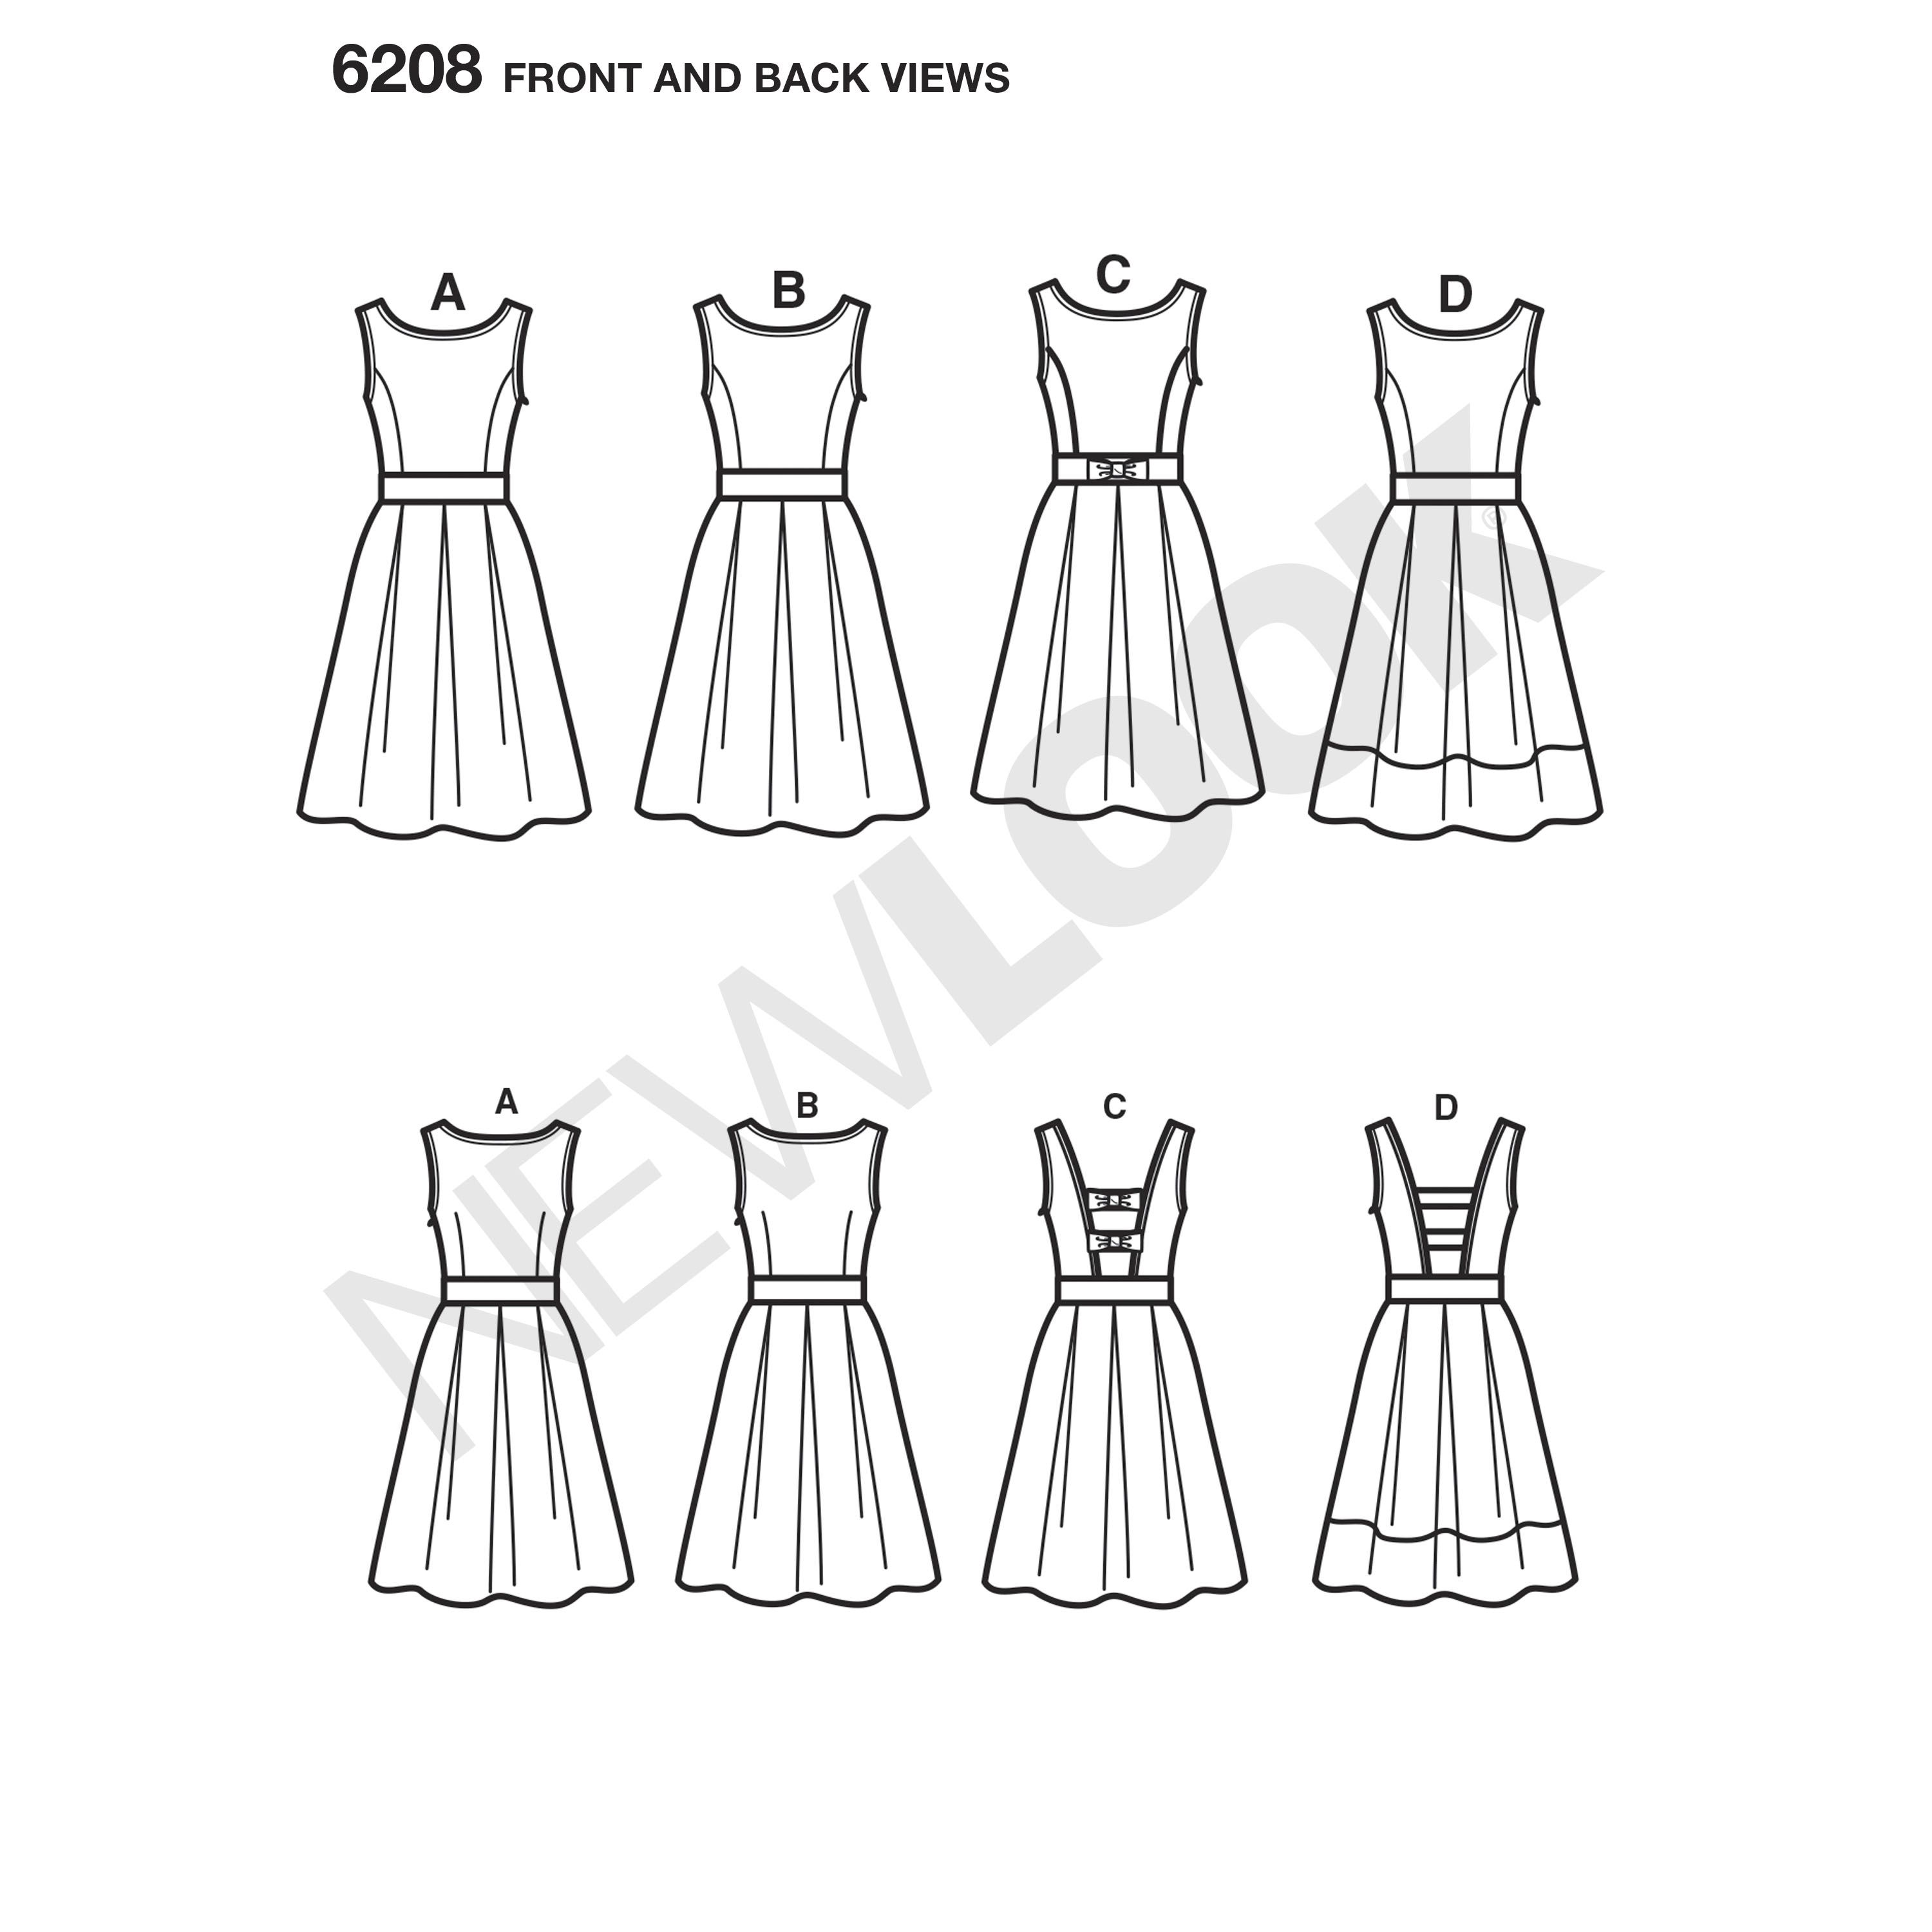 Misses' Retro Style Dress With Boat Neckline Has Self Or